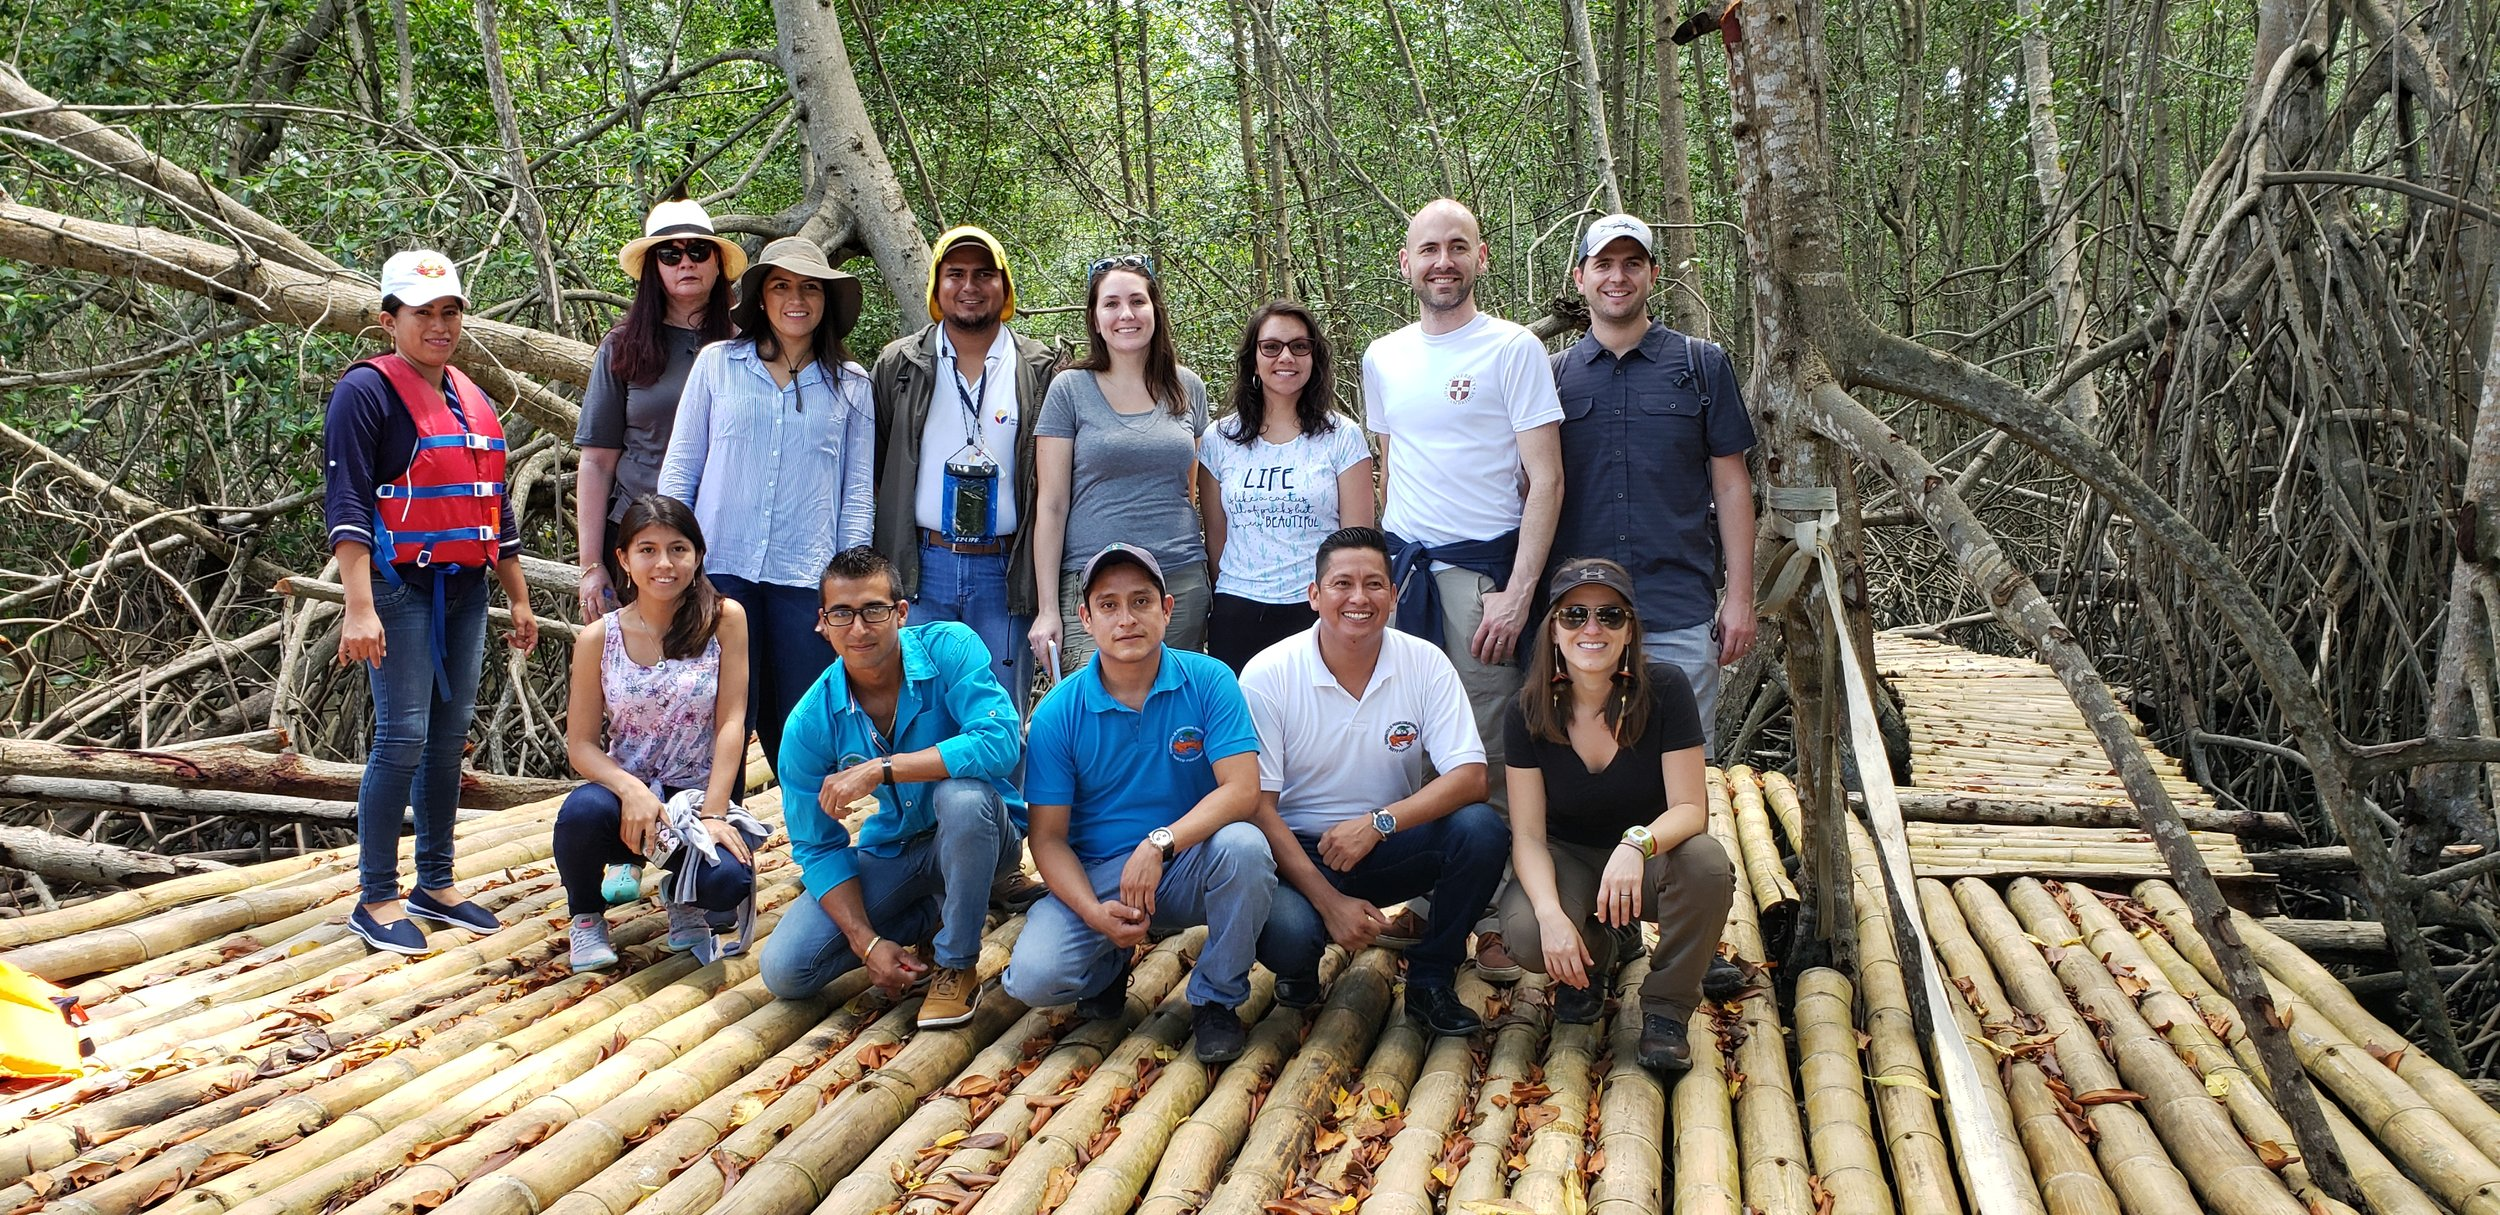 B4Nature participants in the mangrove restoration area managed by the Nuevo Porvenir Association. The restored mangroves provide a critical source of income for the community, which collects crabs using sustainable fishing practices. The area is also used for ecotourism excursions along this new mangrove boardwalk.